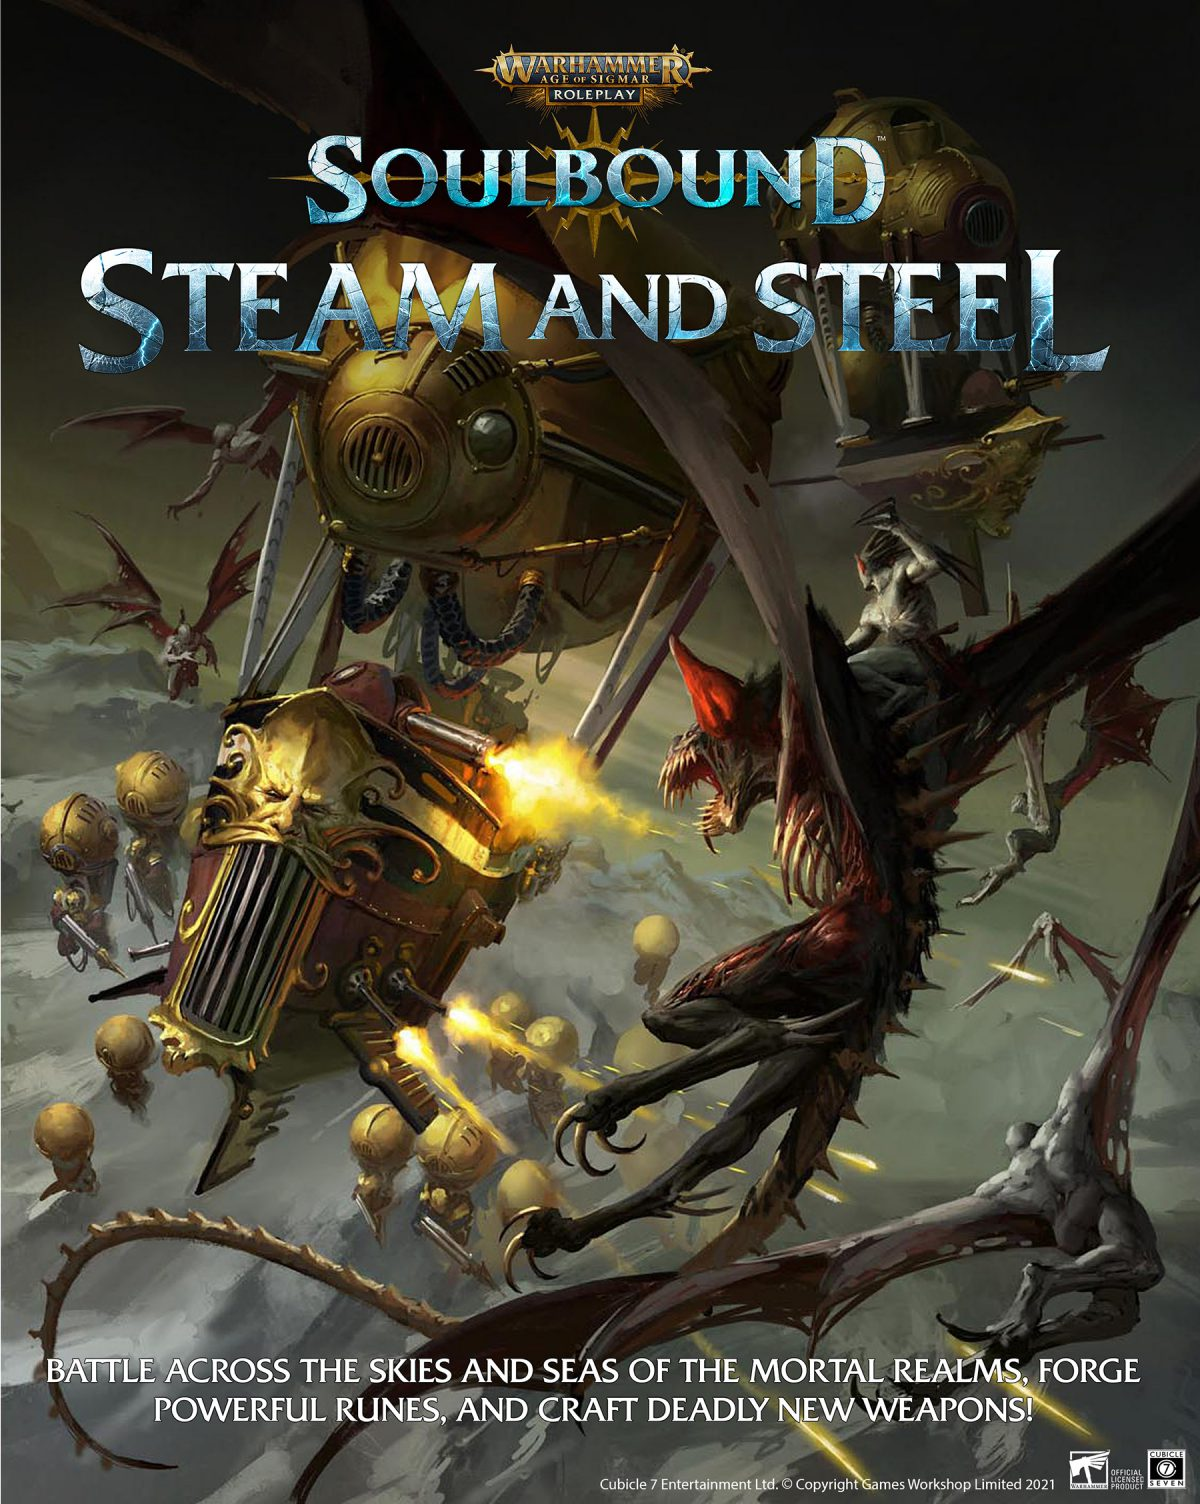 Age Of Sigmar Soulbound Steam & Steel - Cubicle 7